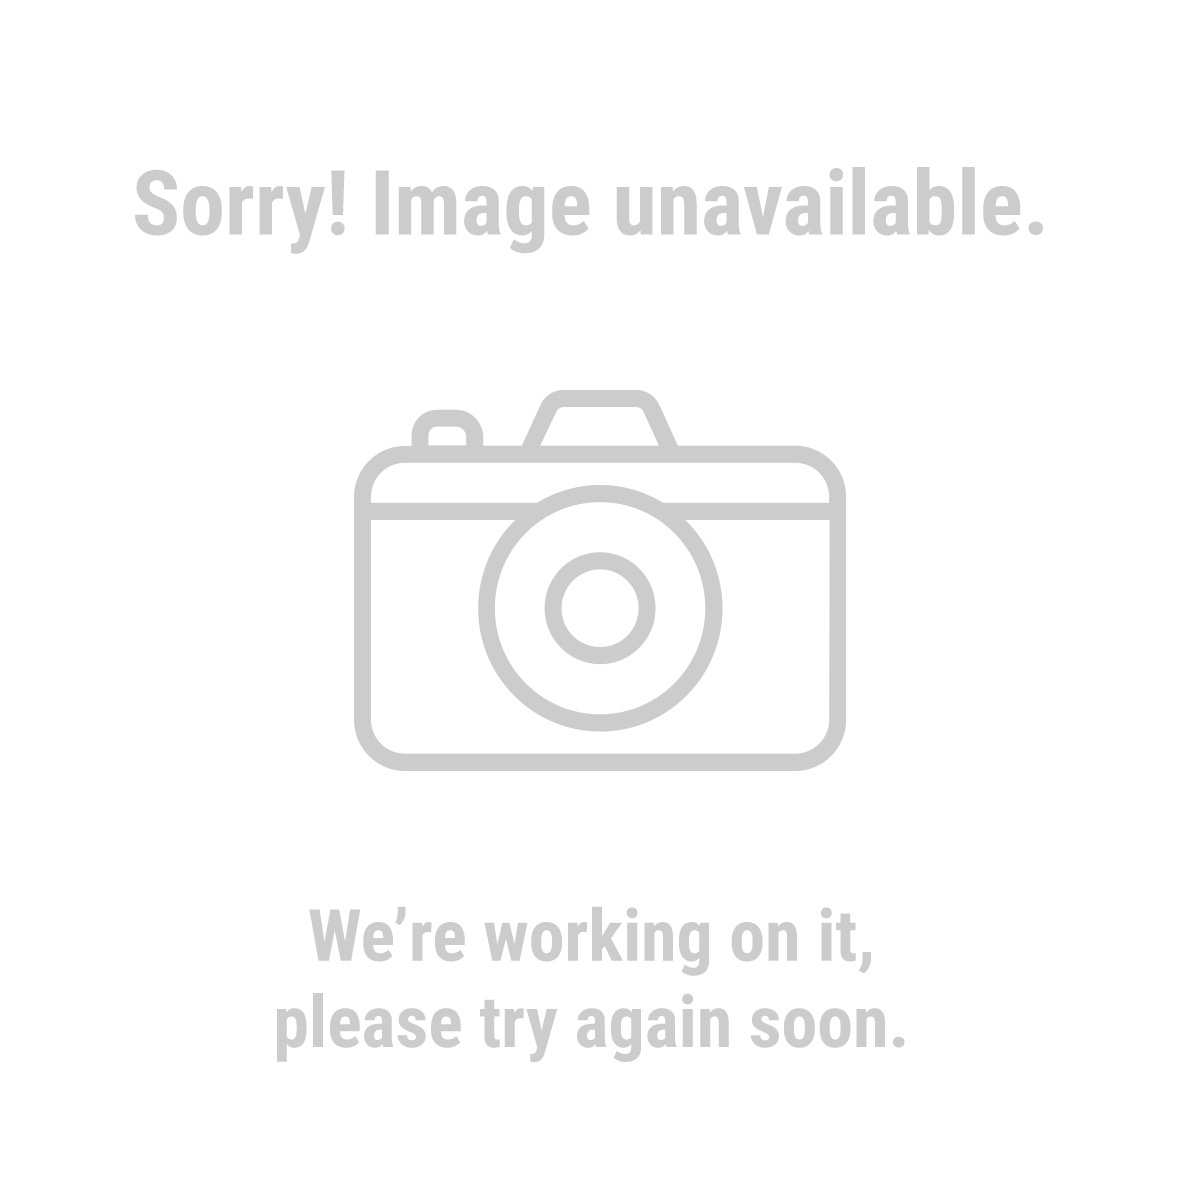 "Chicago Electric Welding Systems 42914 0.030""  E71T-GS Flux Core Welding Wire, 10 Lbs."